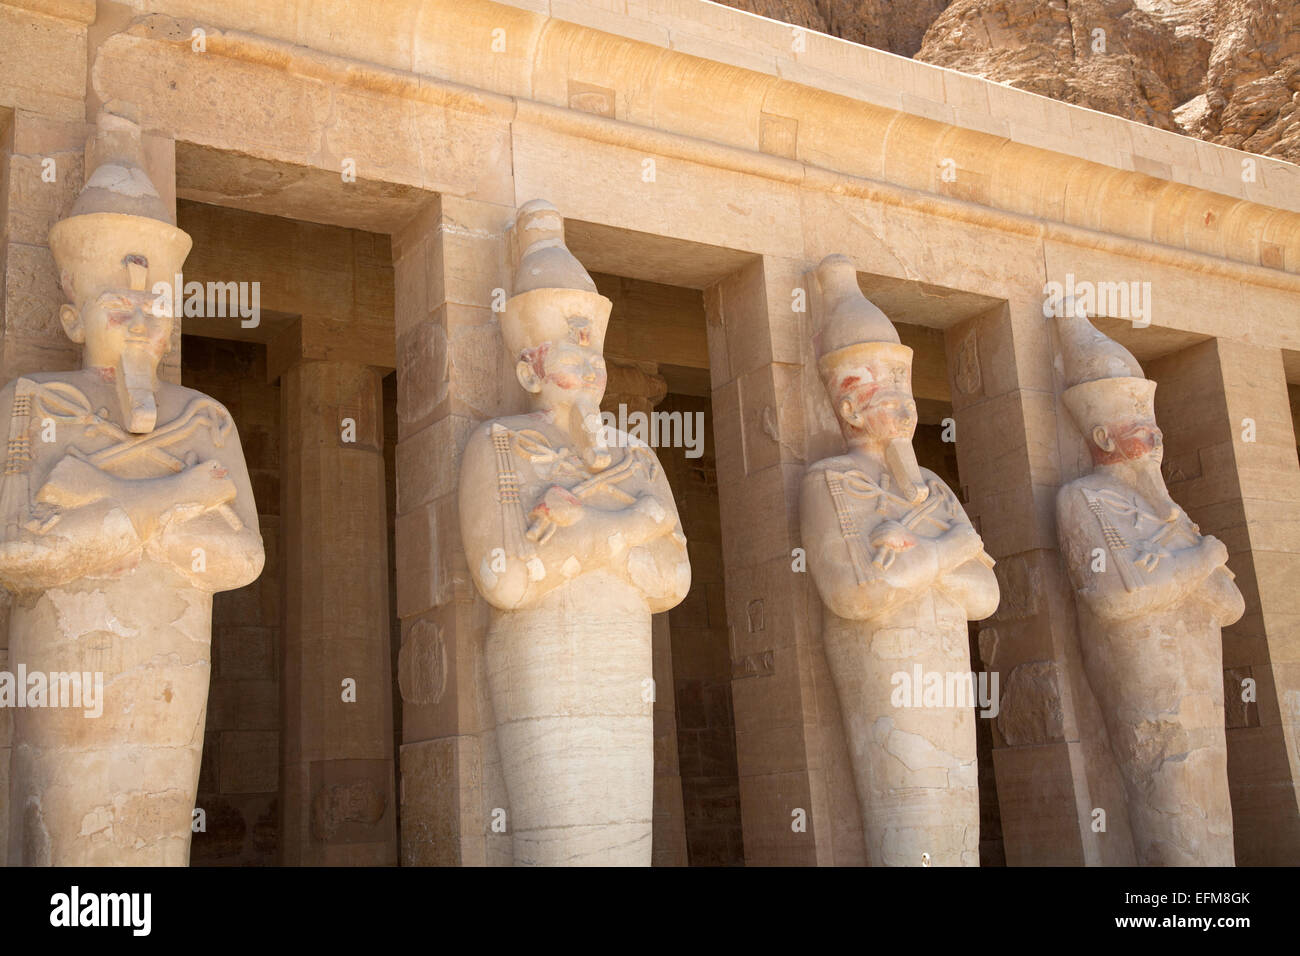 Statues of Hatshepsut at Deir-al-Bahri in Luxor's Valley of the Kings. - Stock Image